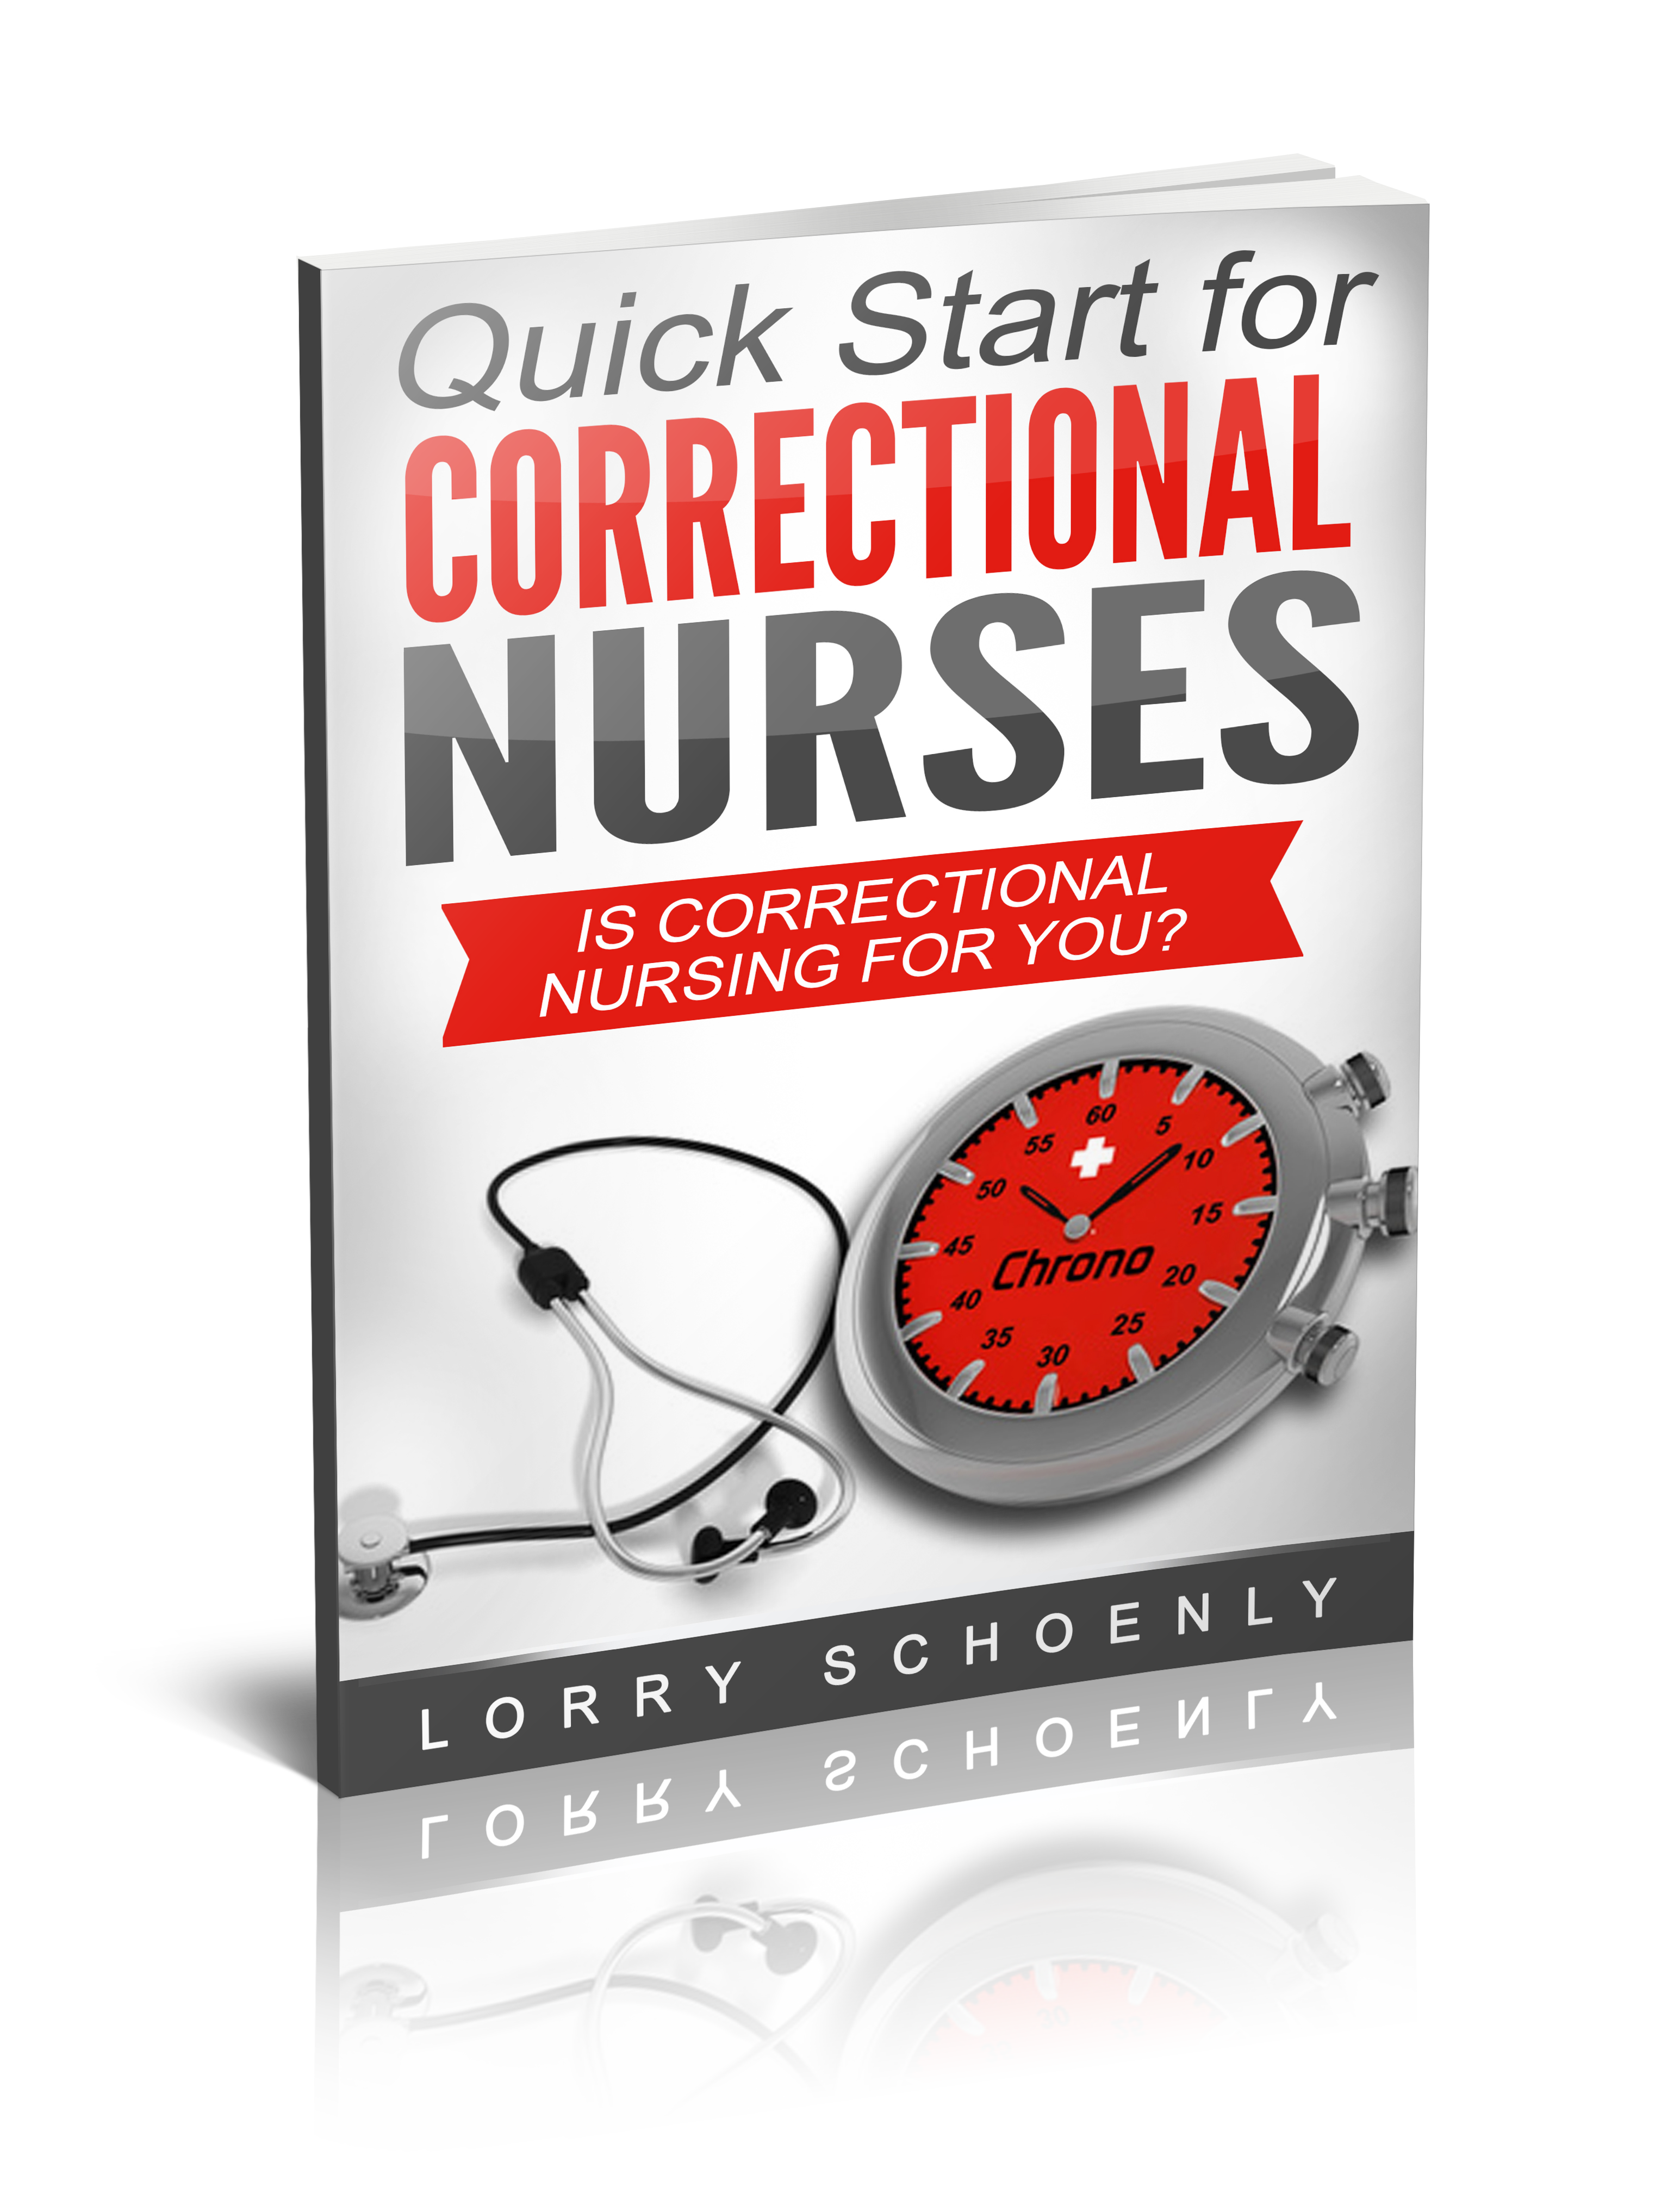 Quick_Start_for_Correctional_Nurses Vol 1